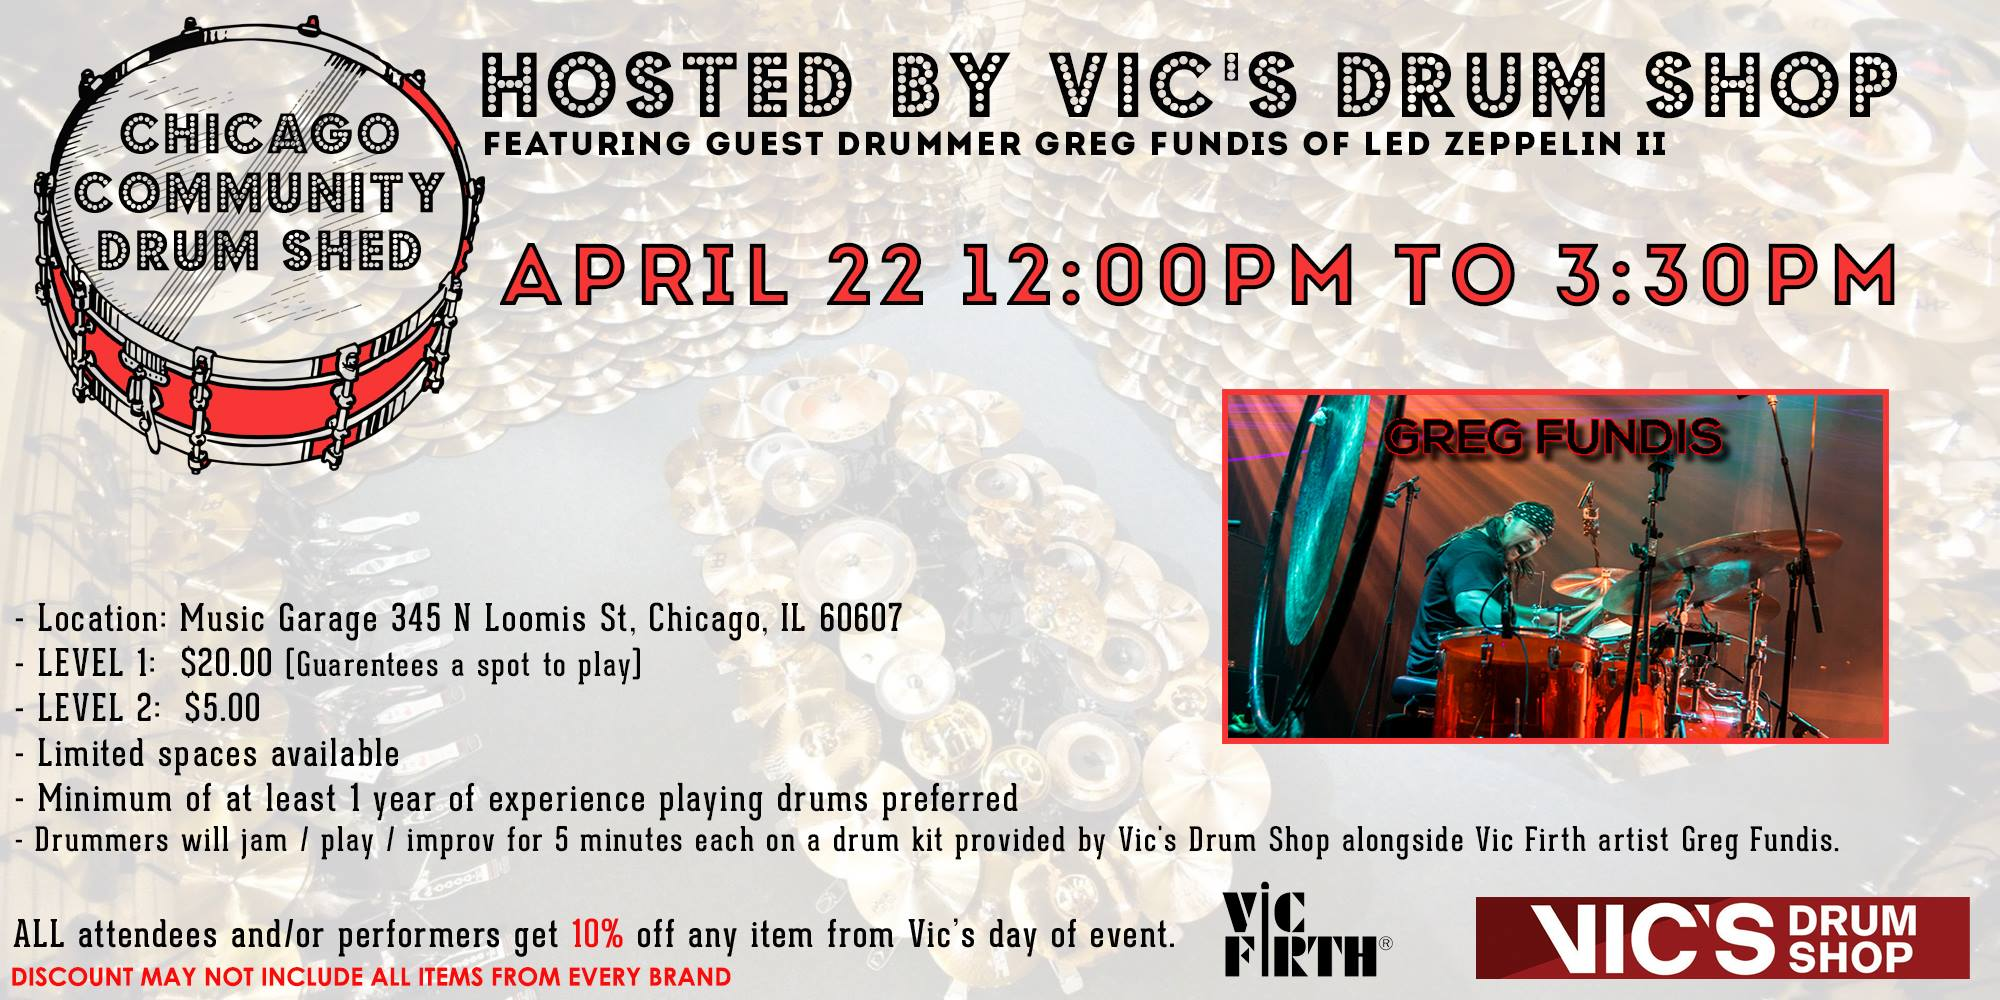 Chicago Community Drum Shed Featuring Led Zeppelin II's Greg Fundis (2nd Session Added!)